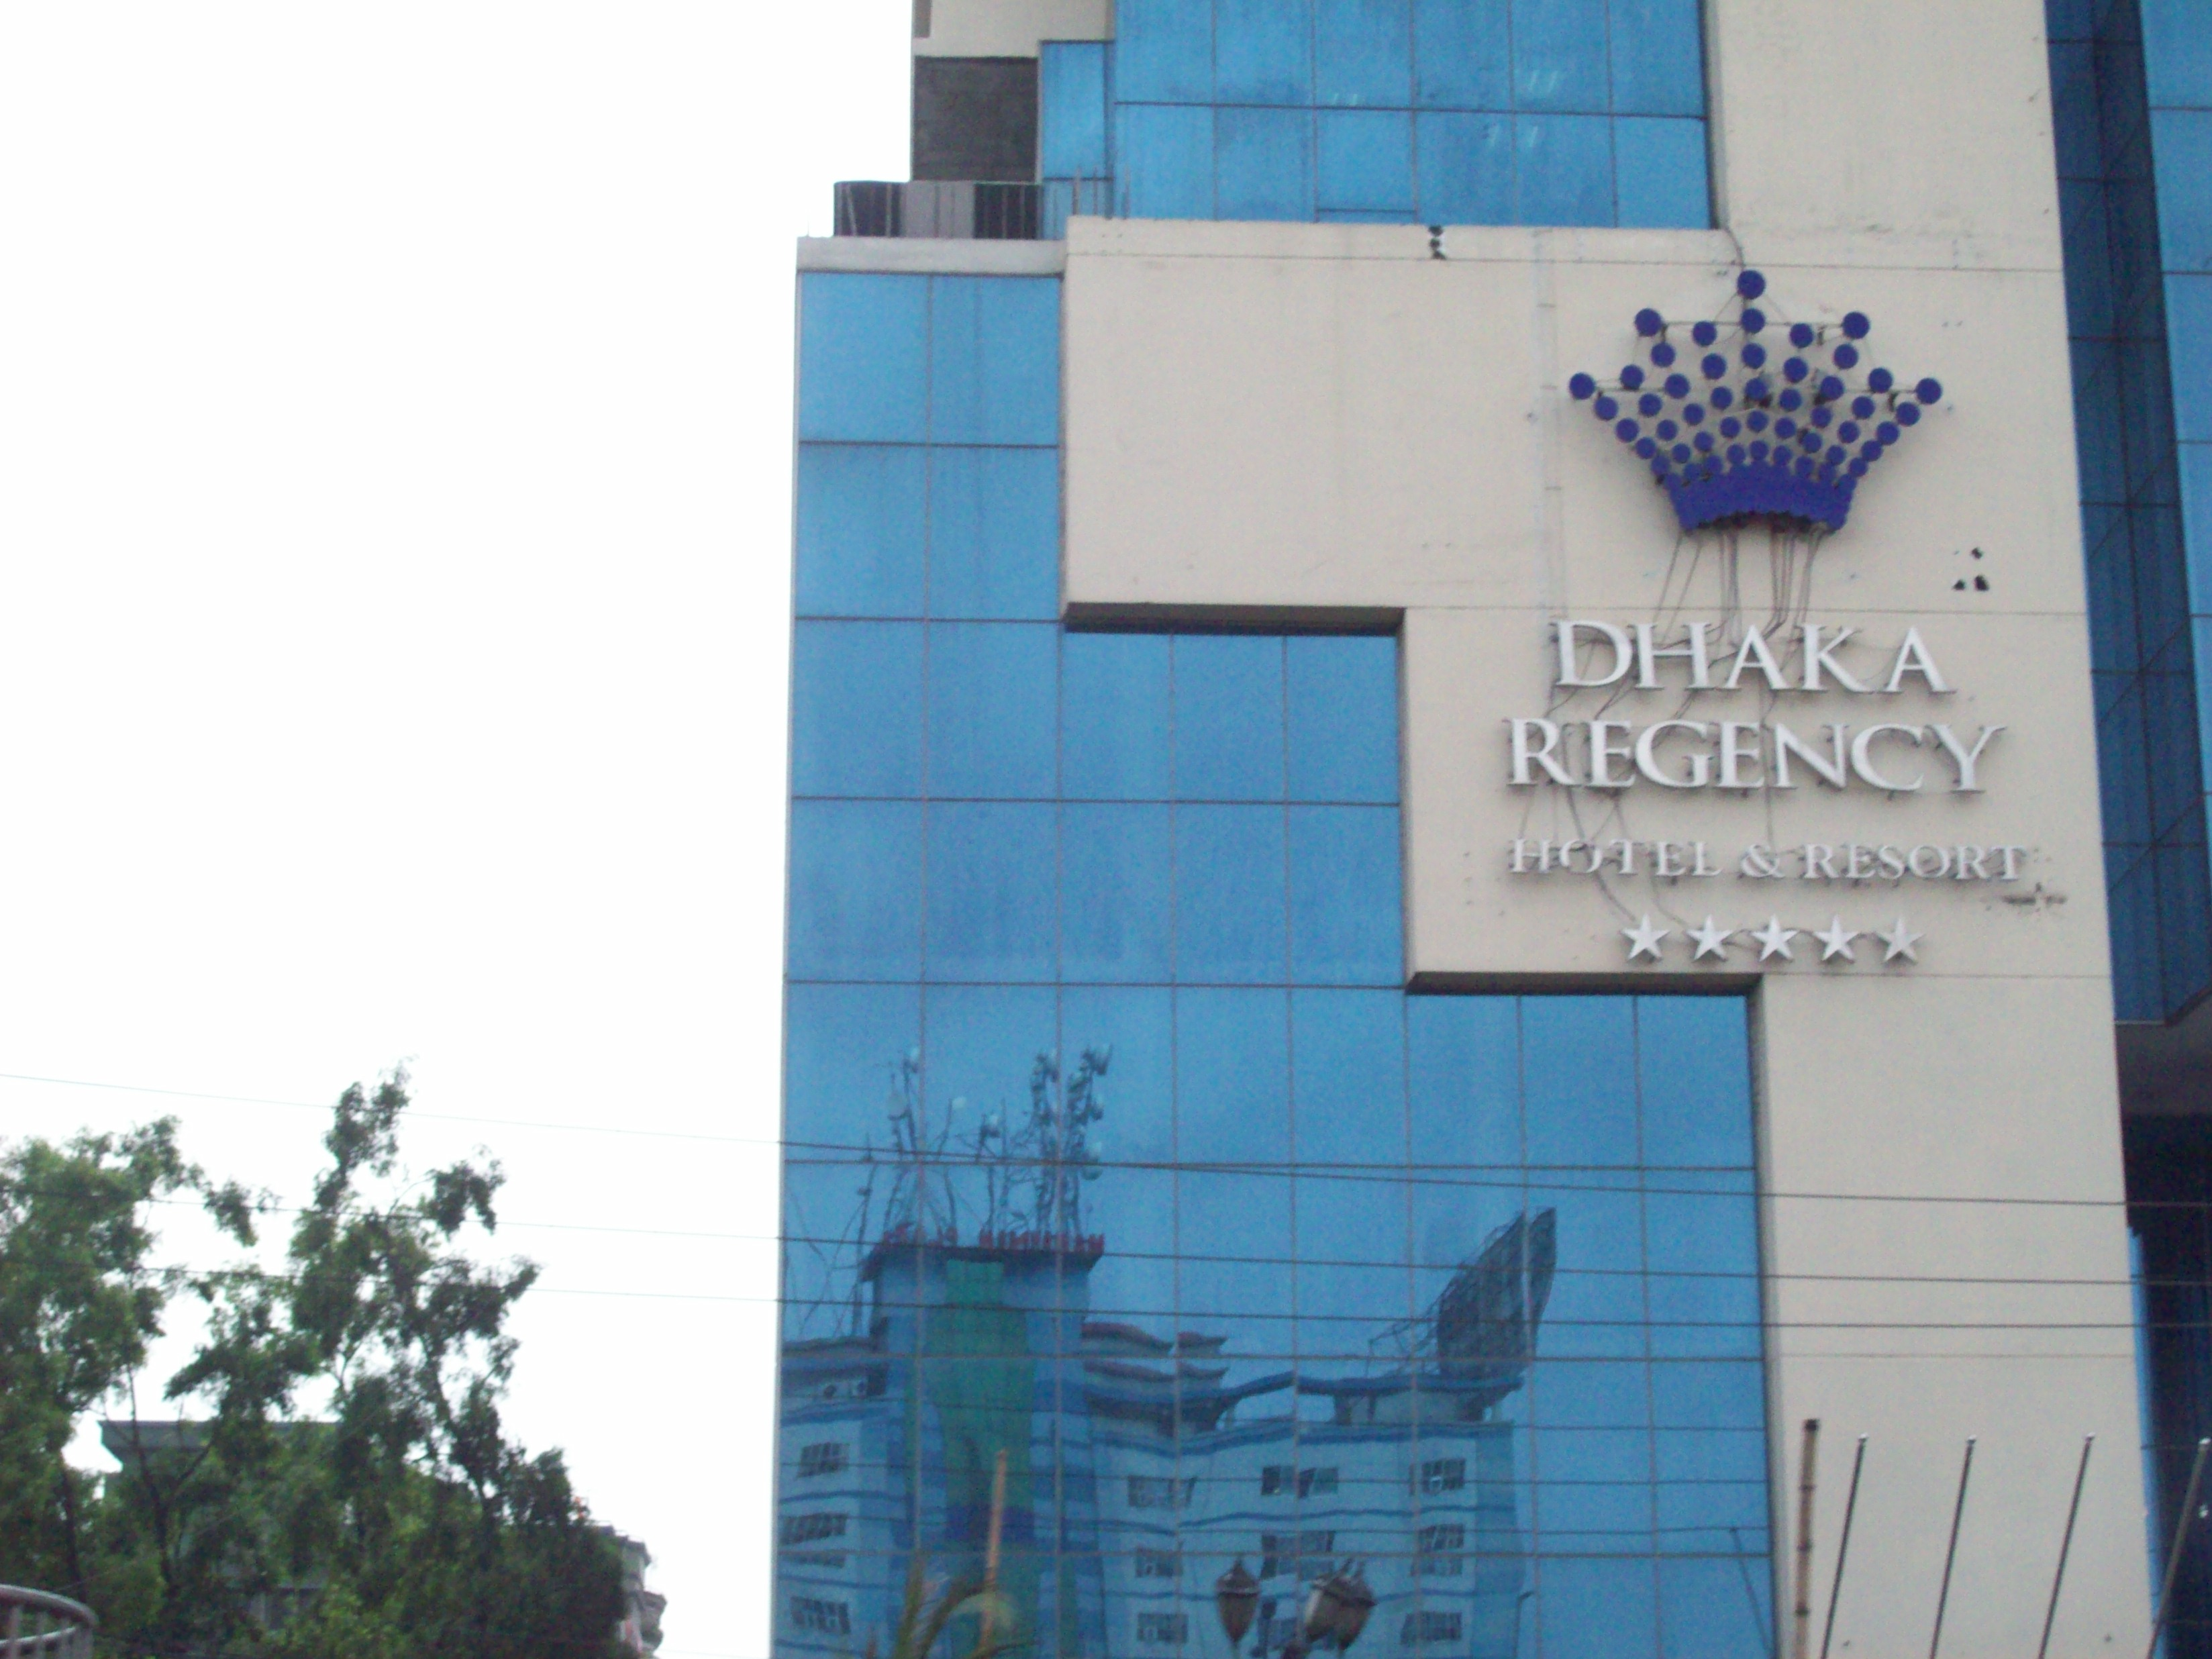 Dhaka Regency Hotel & Resort